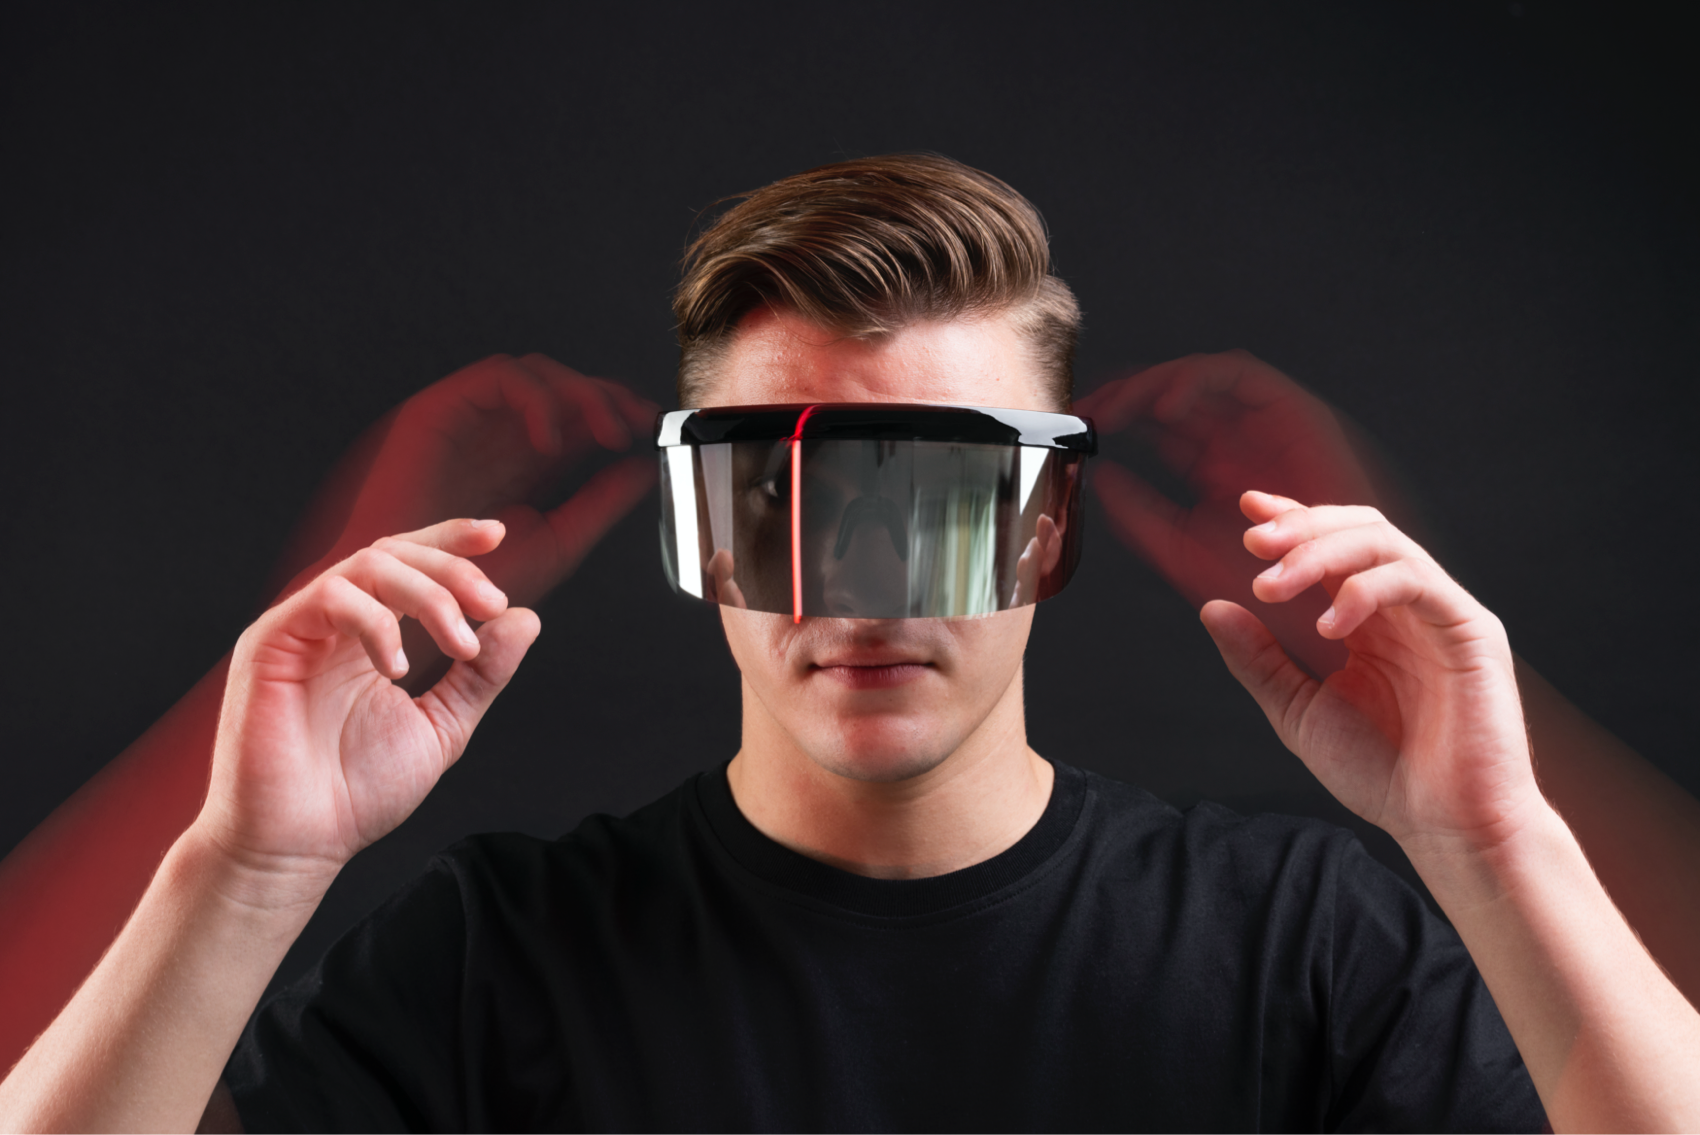 man-playing-games-with-vr-goggles-technology-backg-JST35LW